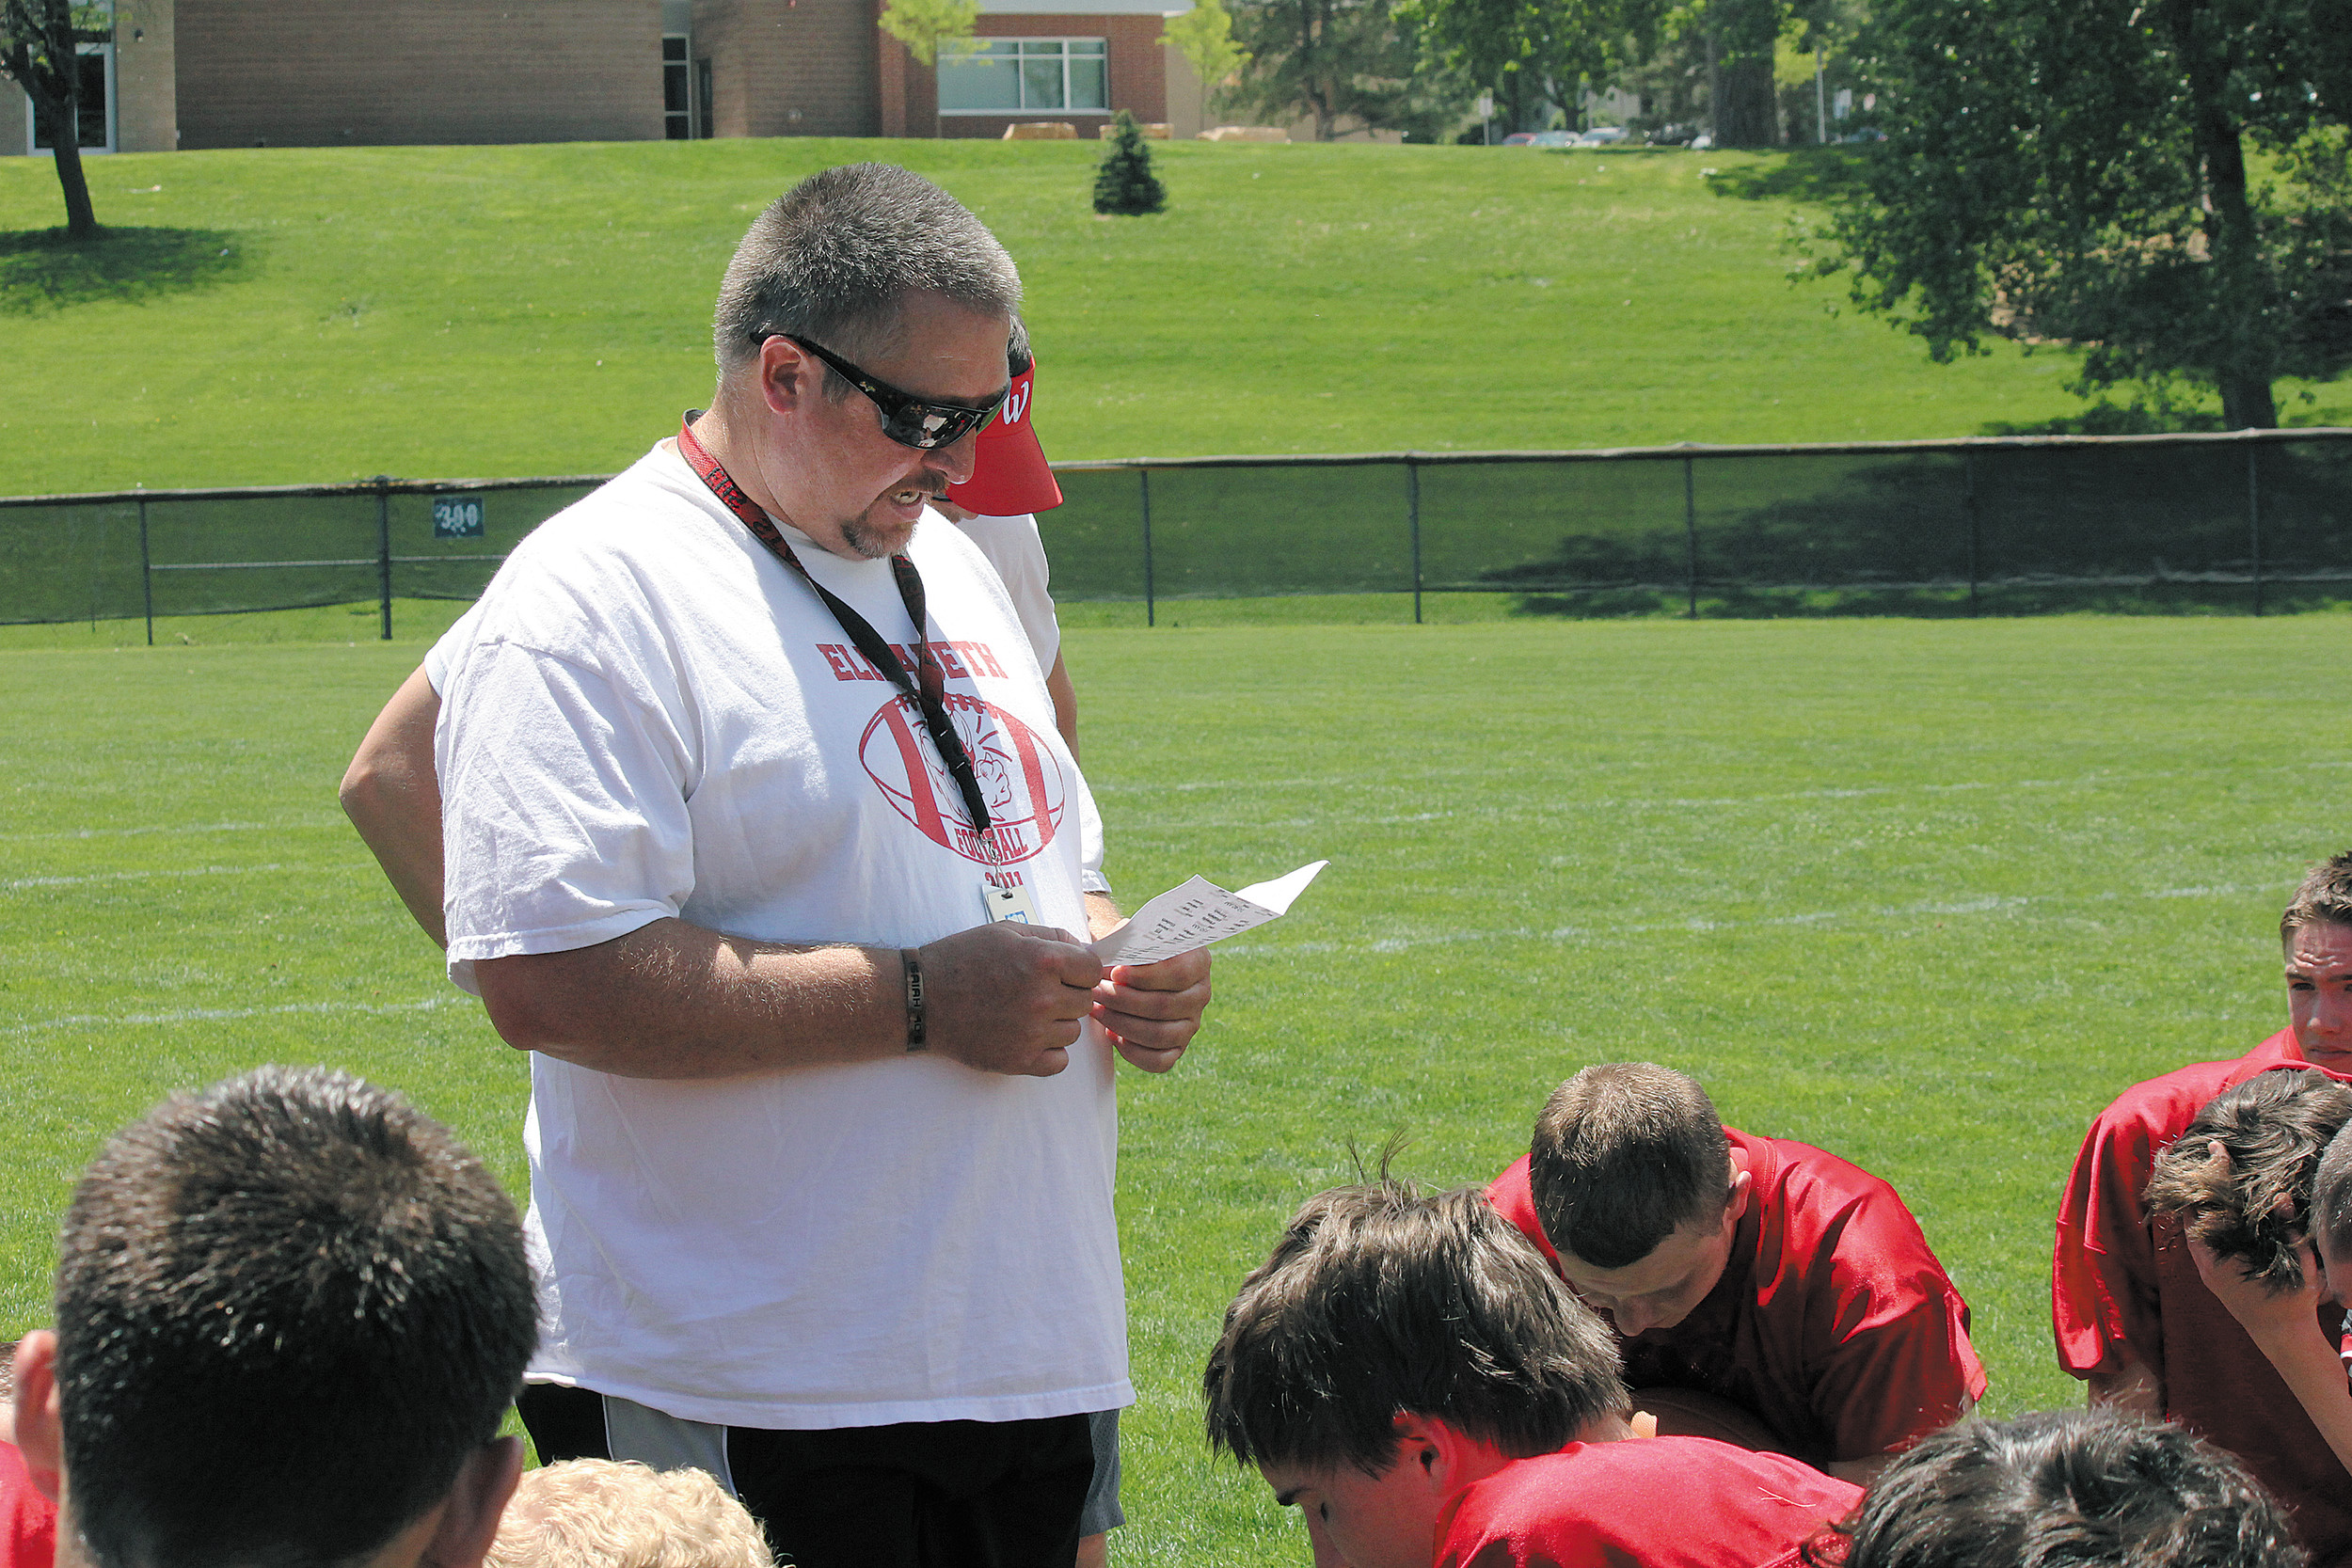 Elizabeth head football coach Chris Cline checks the schedule as he briefs his team about their next game during the 7-on-7 tournament May 31 at Englewood High School. Fifteen teams entered the all-passing competition and the Cardinals battled their way to a fourth-place finish.